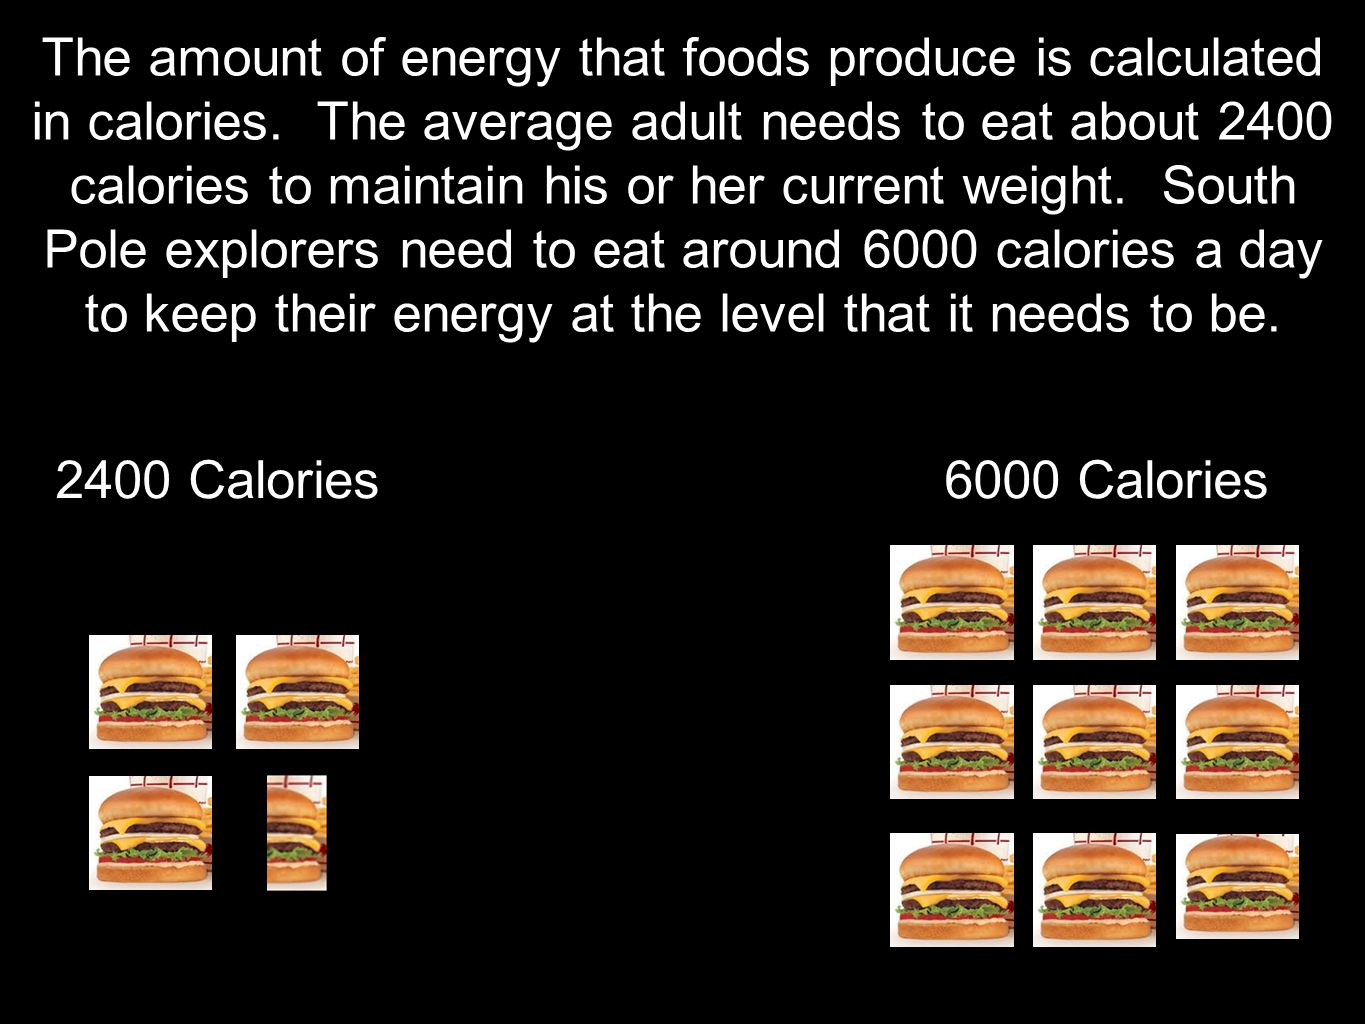 The amount of energy that foods produce is calculated in calories